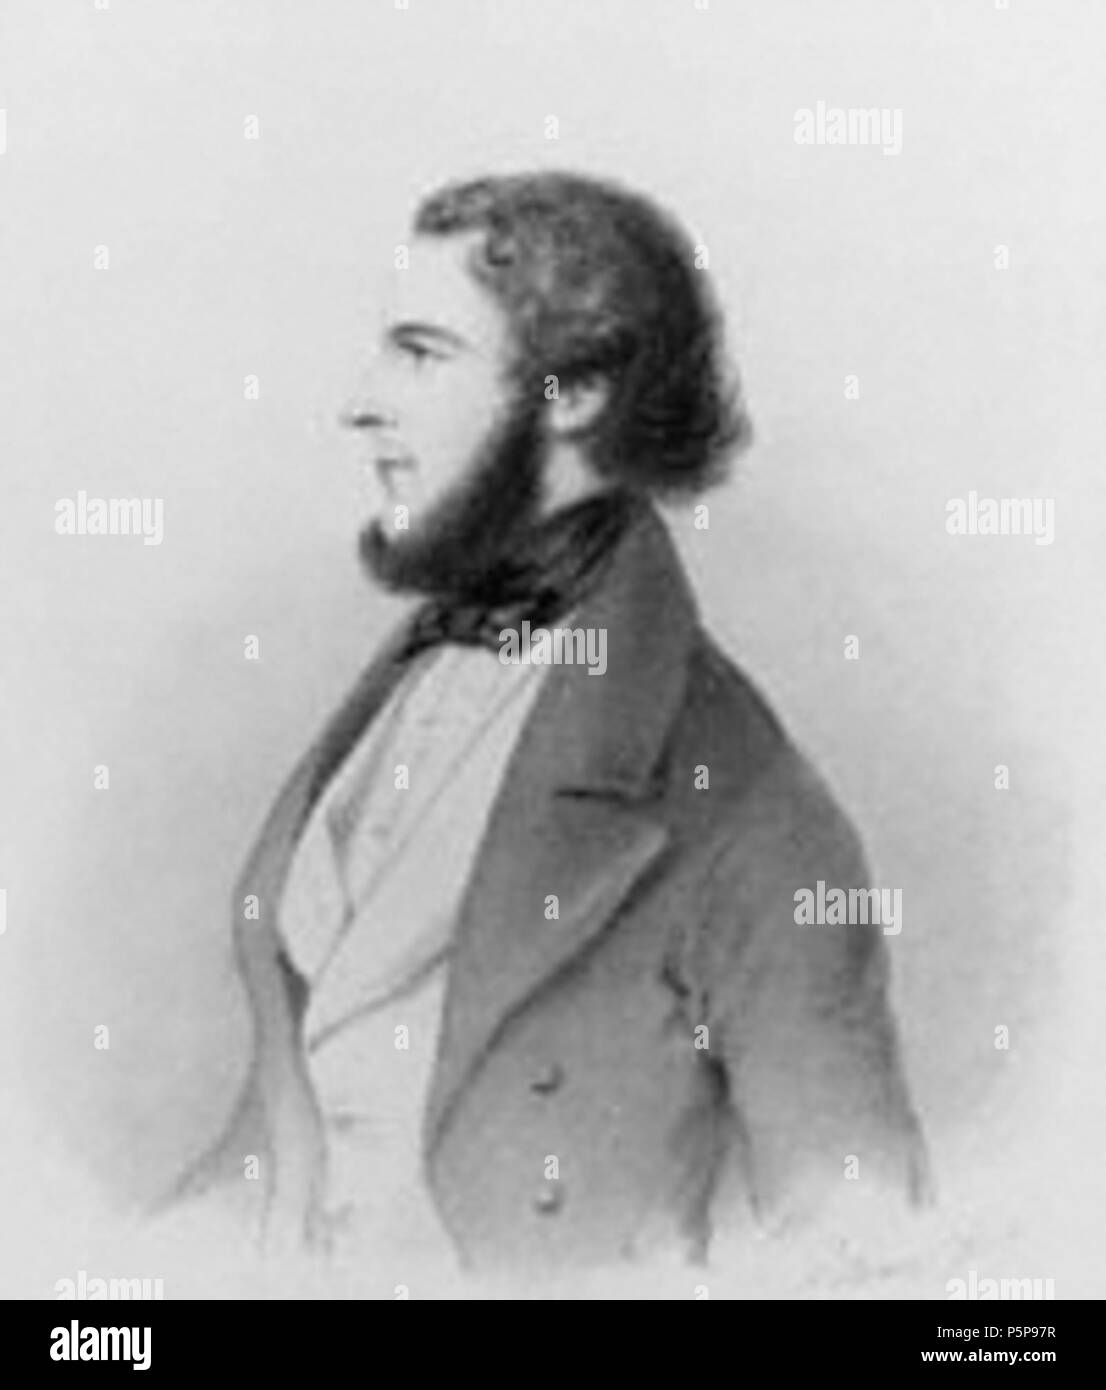 N/A. English: Portrait of Benjamin Lumley, His Majesty's Theatre manager, by Count d'Orsay. From Lumley's memoirs (1864). Français : Portrait de Benjamin Lumley, directeur du His Majesty's Theatre par le comte d'Orsay. Illustration extraite des mémoires de Lumley (1864). 1864. Count d'Orsay 189 BenjaminLumley - Stock Image